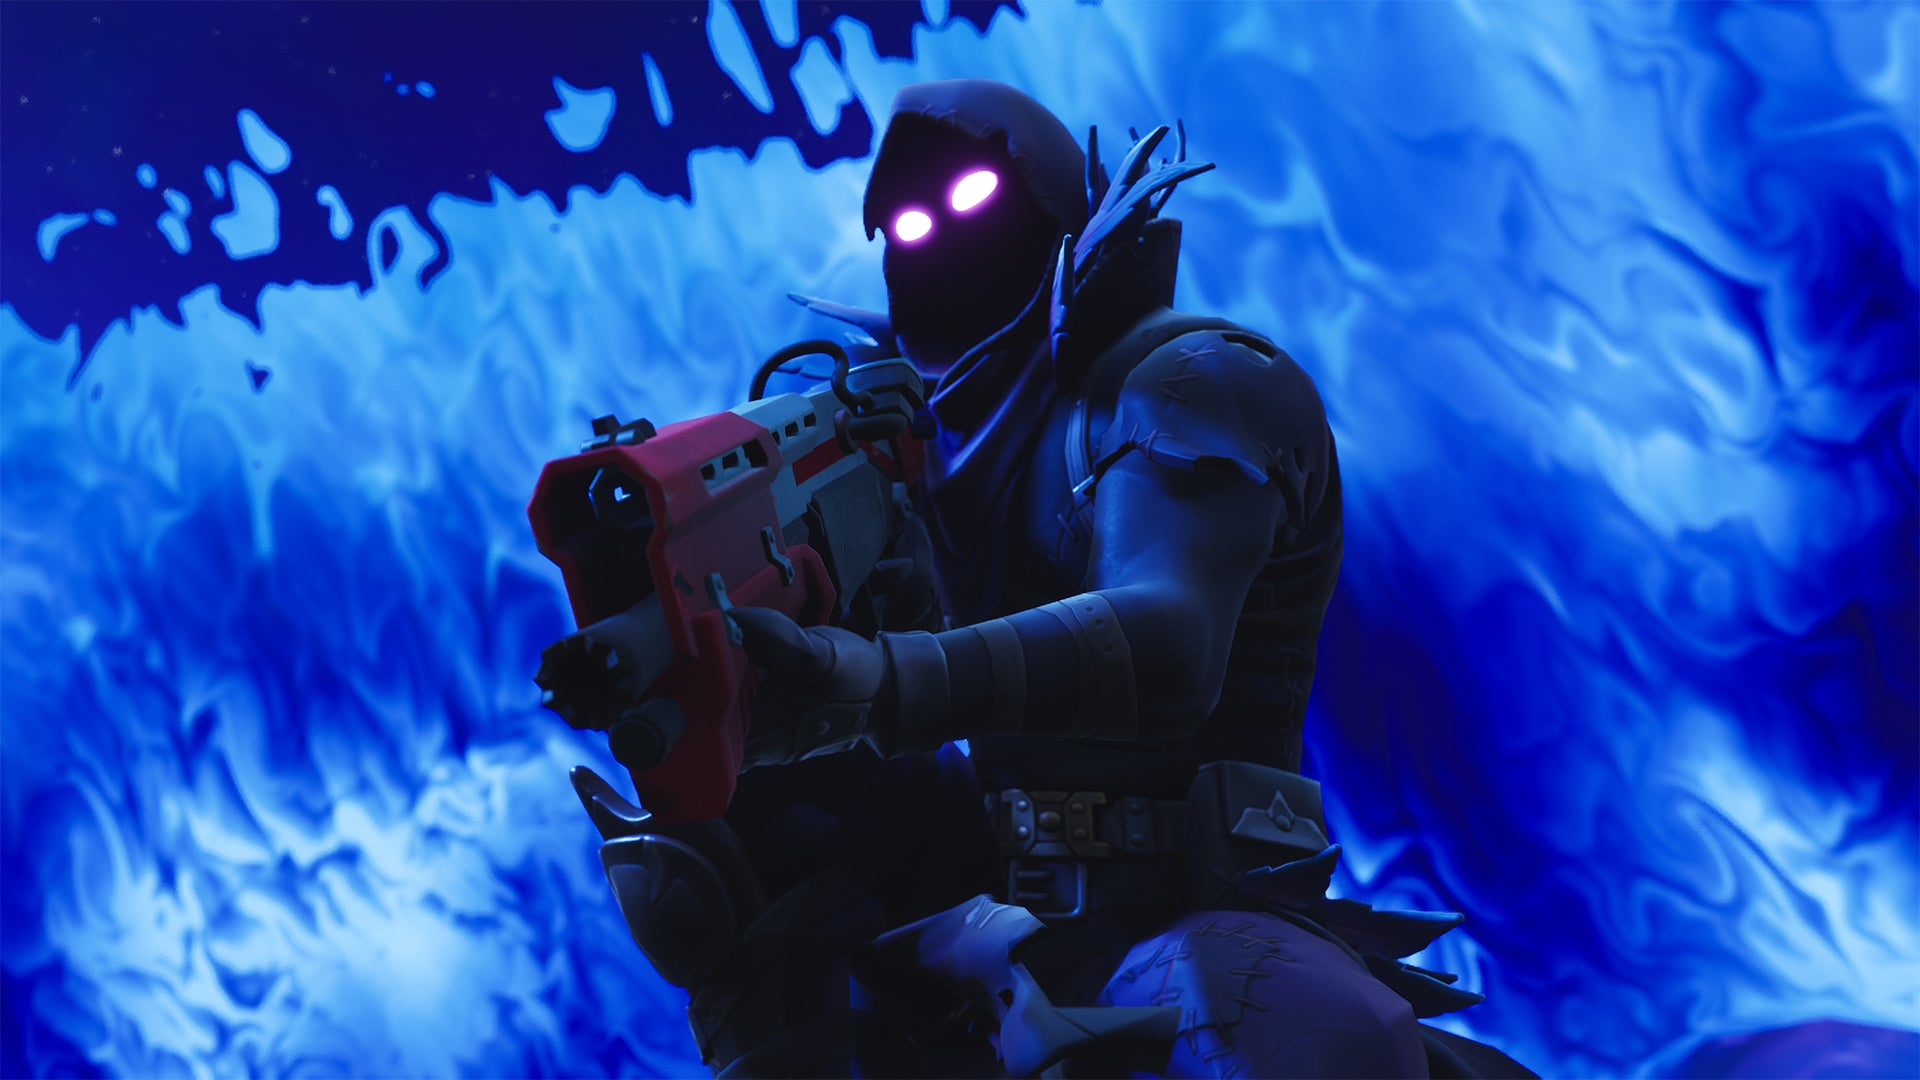 2019 Cool Fortnite Raven Wallpaper Hd For Pc Fortnite Costume For Kids